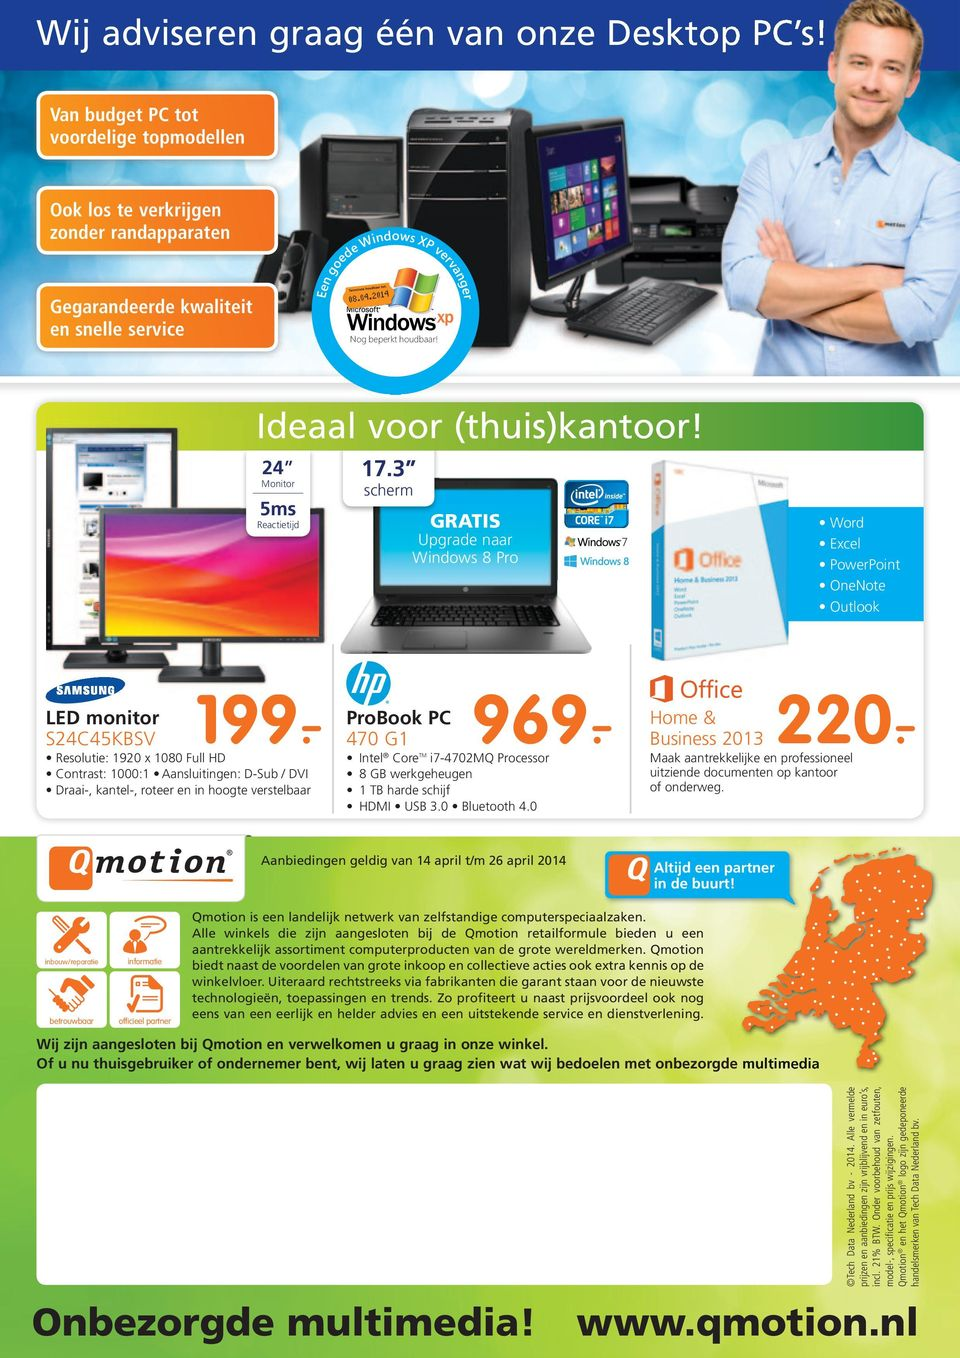 Ideaal voor (thuis)kantoor! 24 17.3 GRATIS Upgrade naar Windows 8 Pro Word Excel PowerPoint OneNote Outlook 220.- 199.